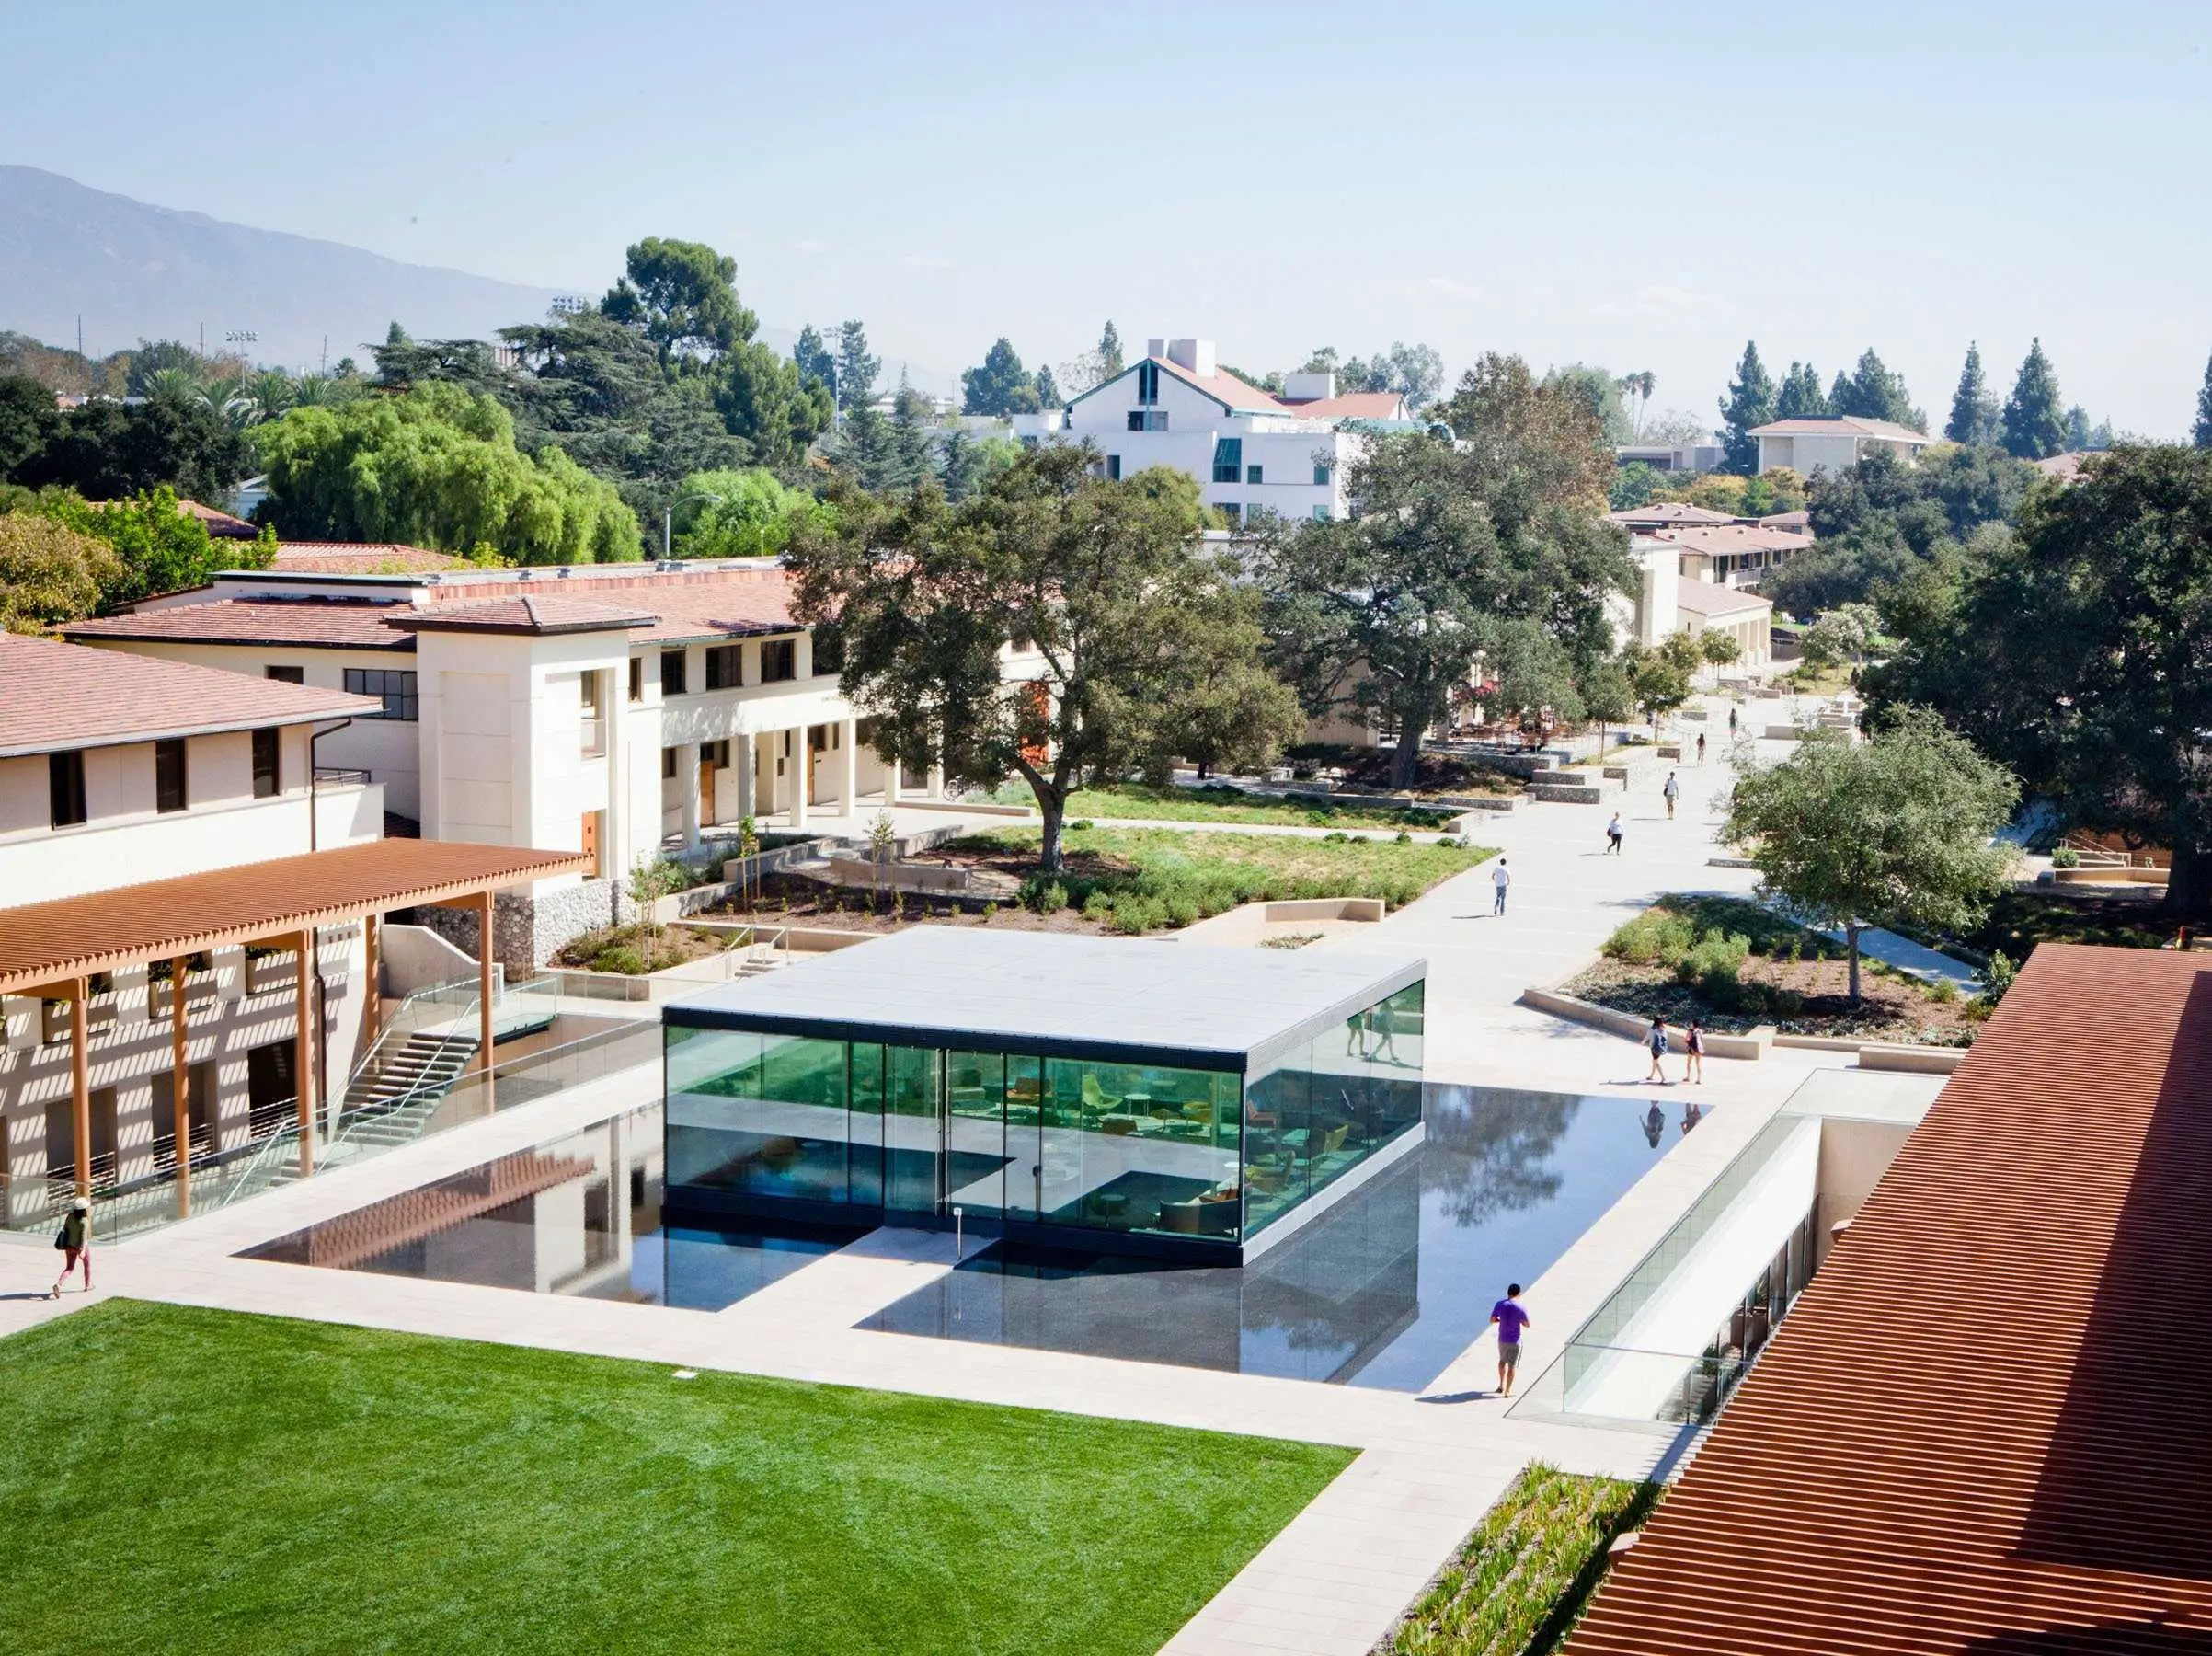 Italy Design University Ranking The 20 Best College Campuses In The Us Business Insider